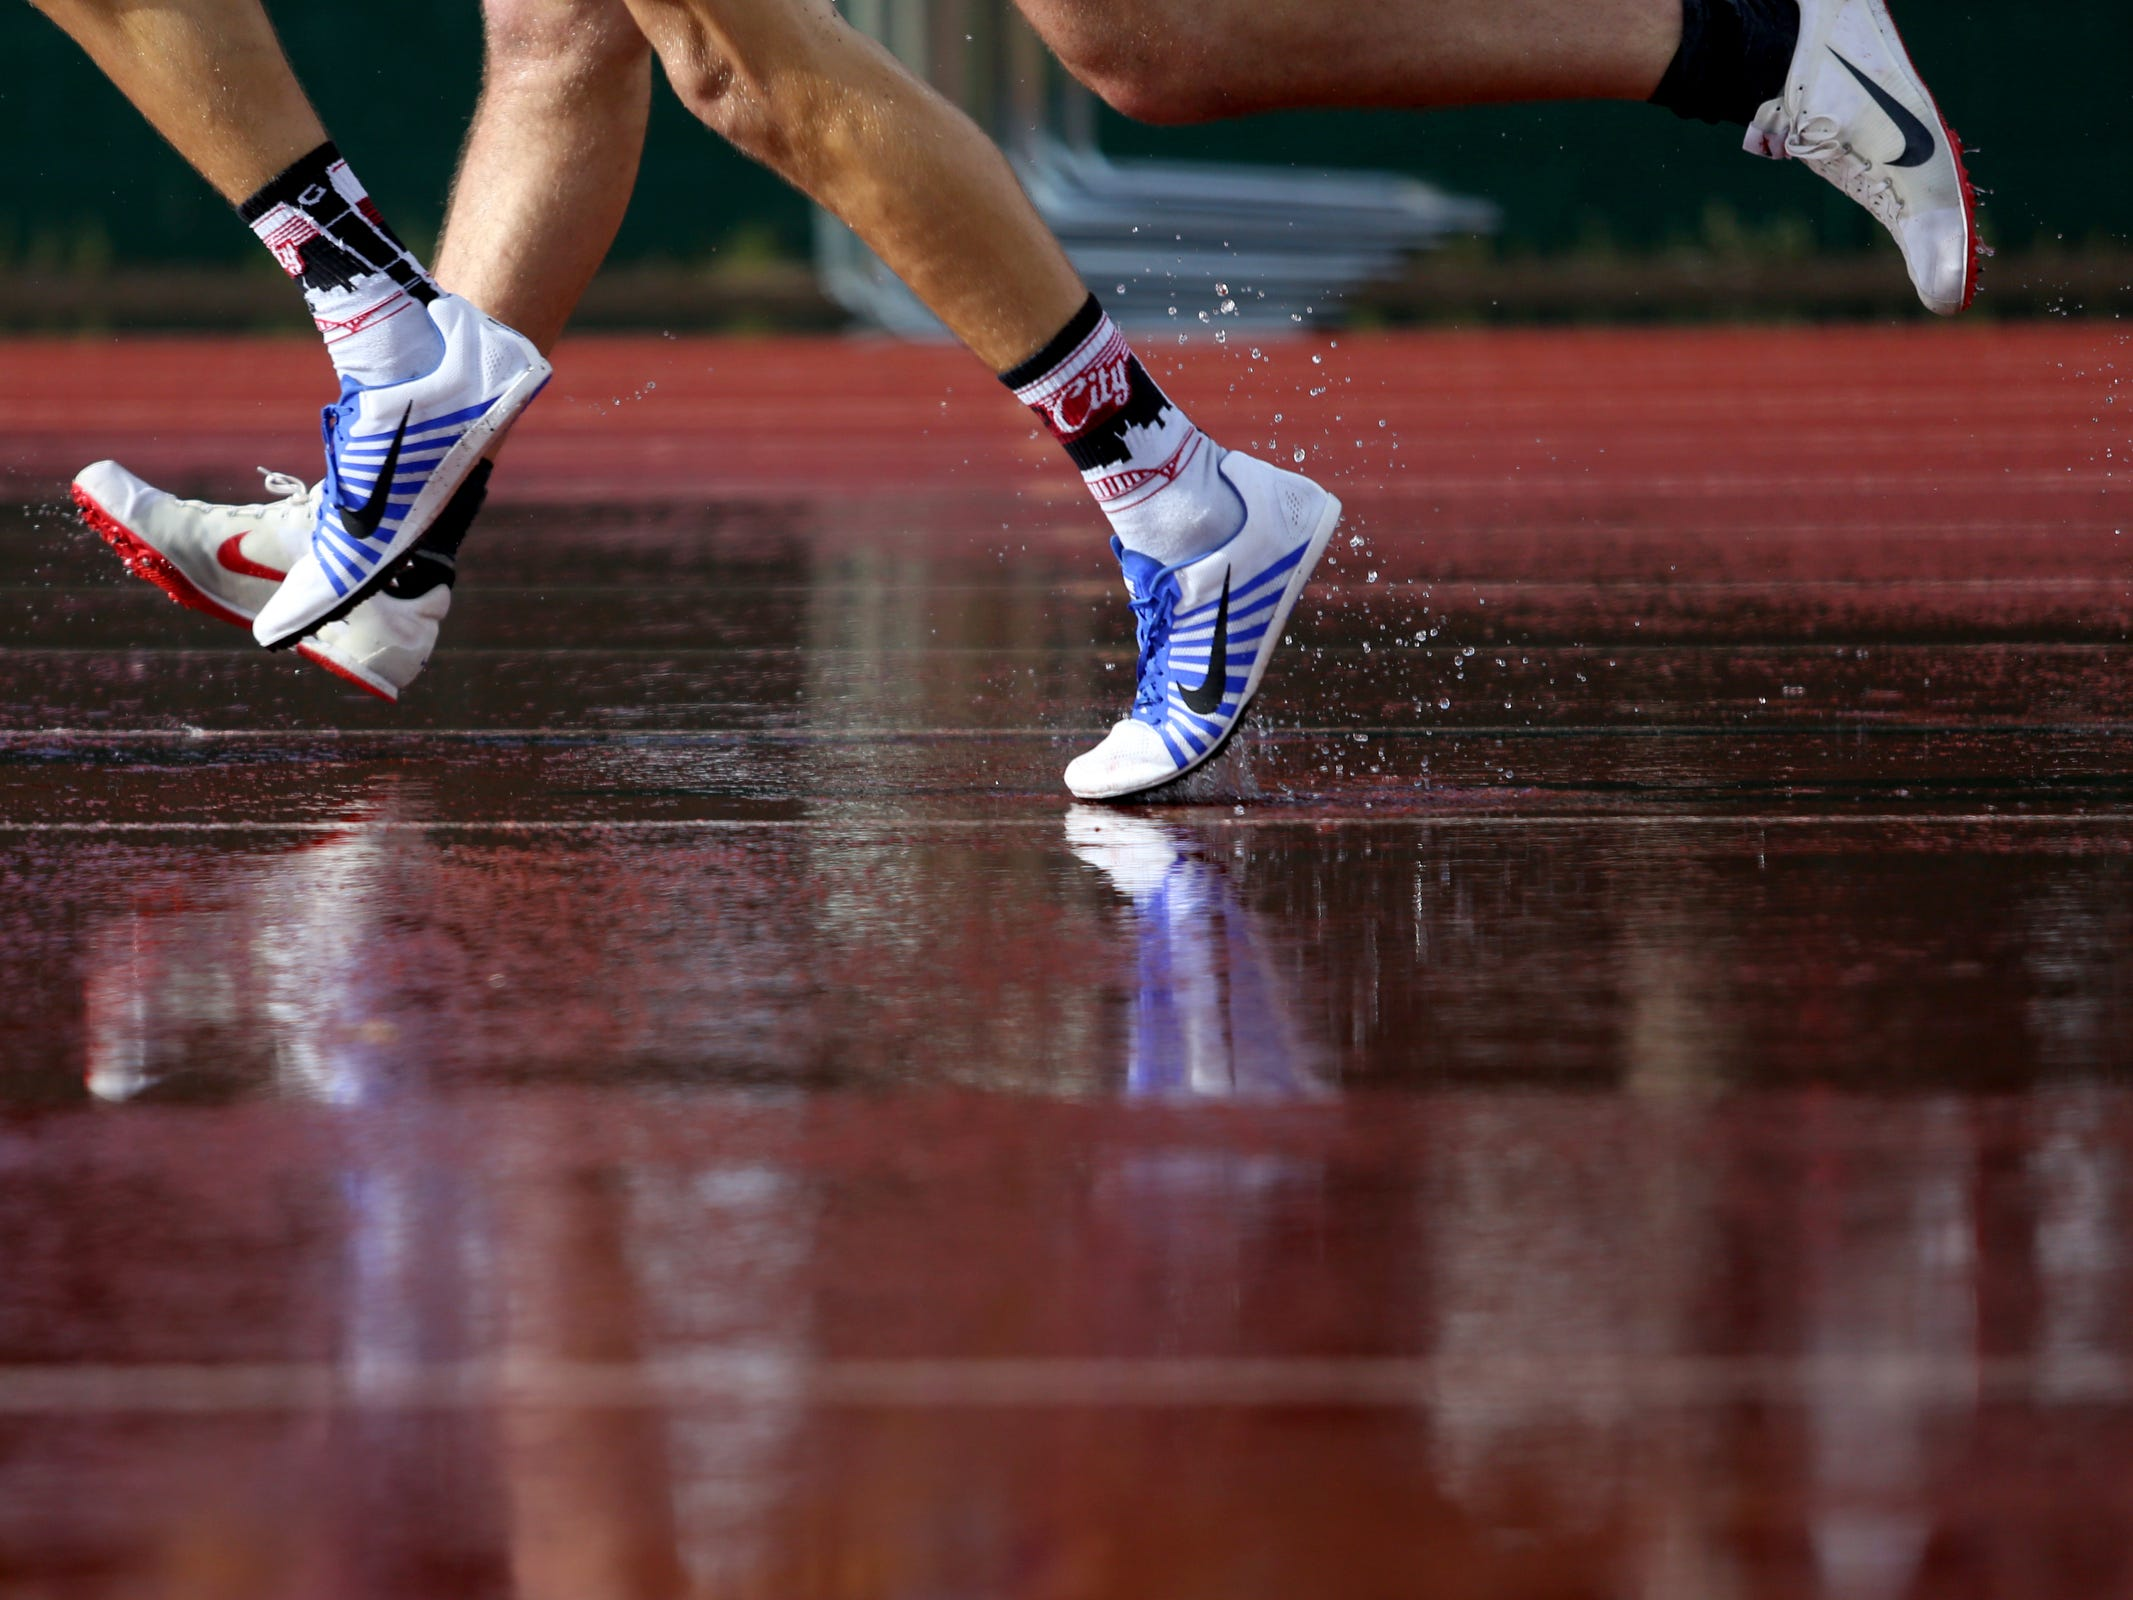 Competitors in the boys 1500 meter run race through puddles during the Titan Track Classic high school track and field meet at West Salem High School on April 5, 2019.